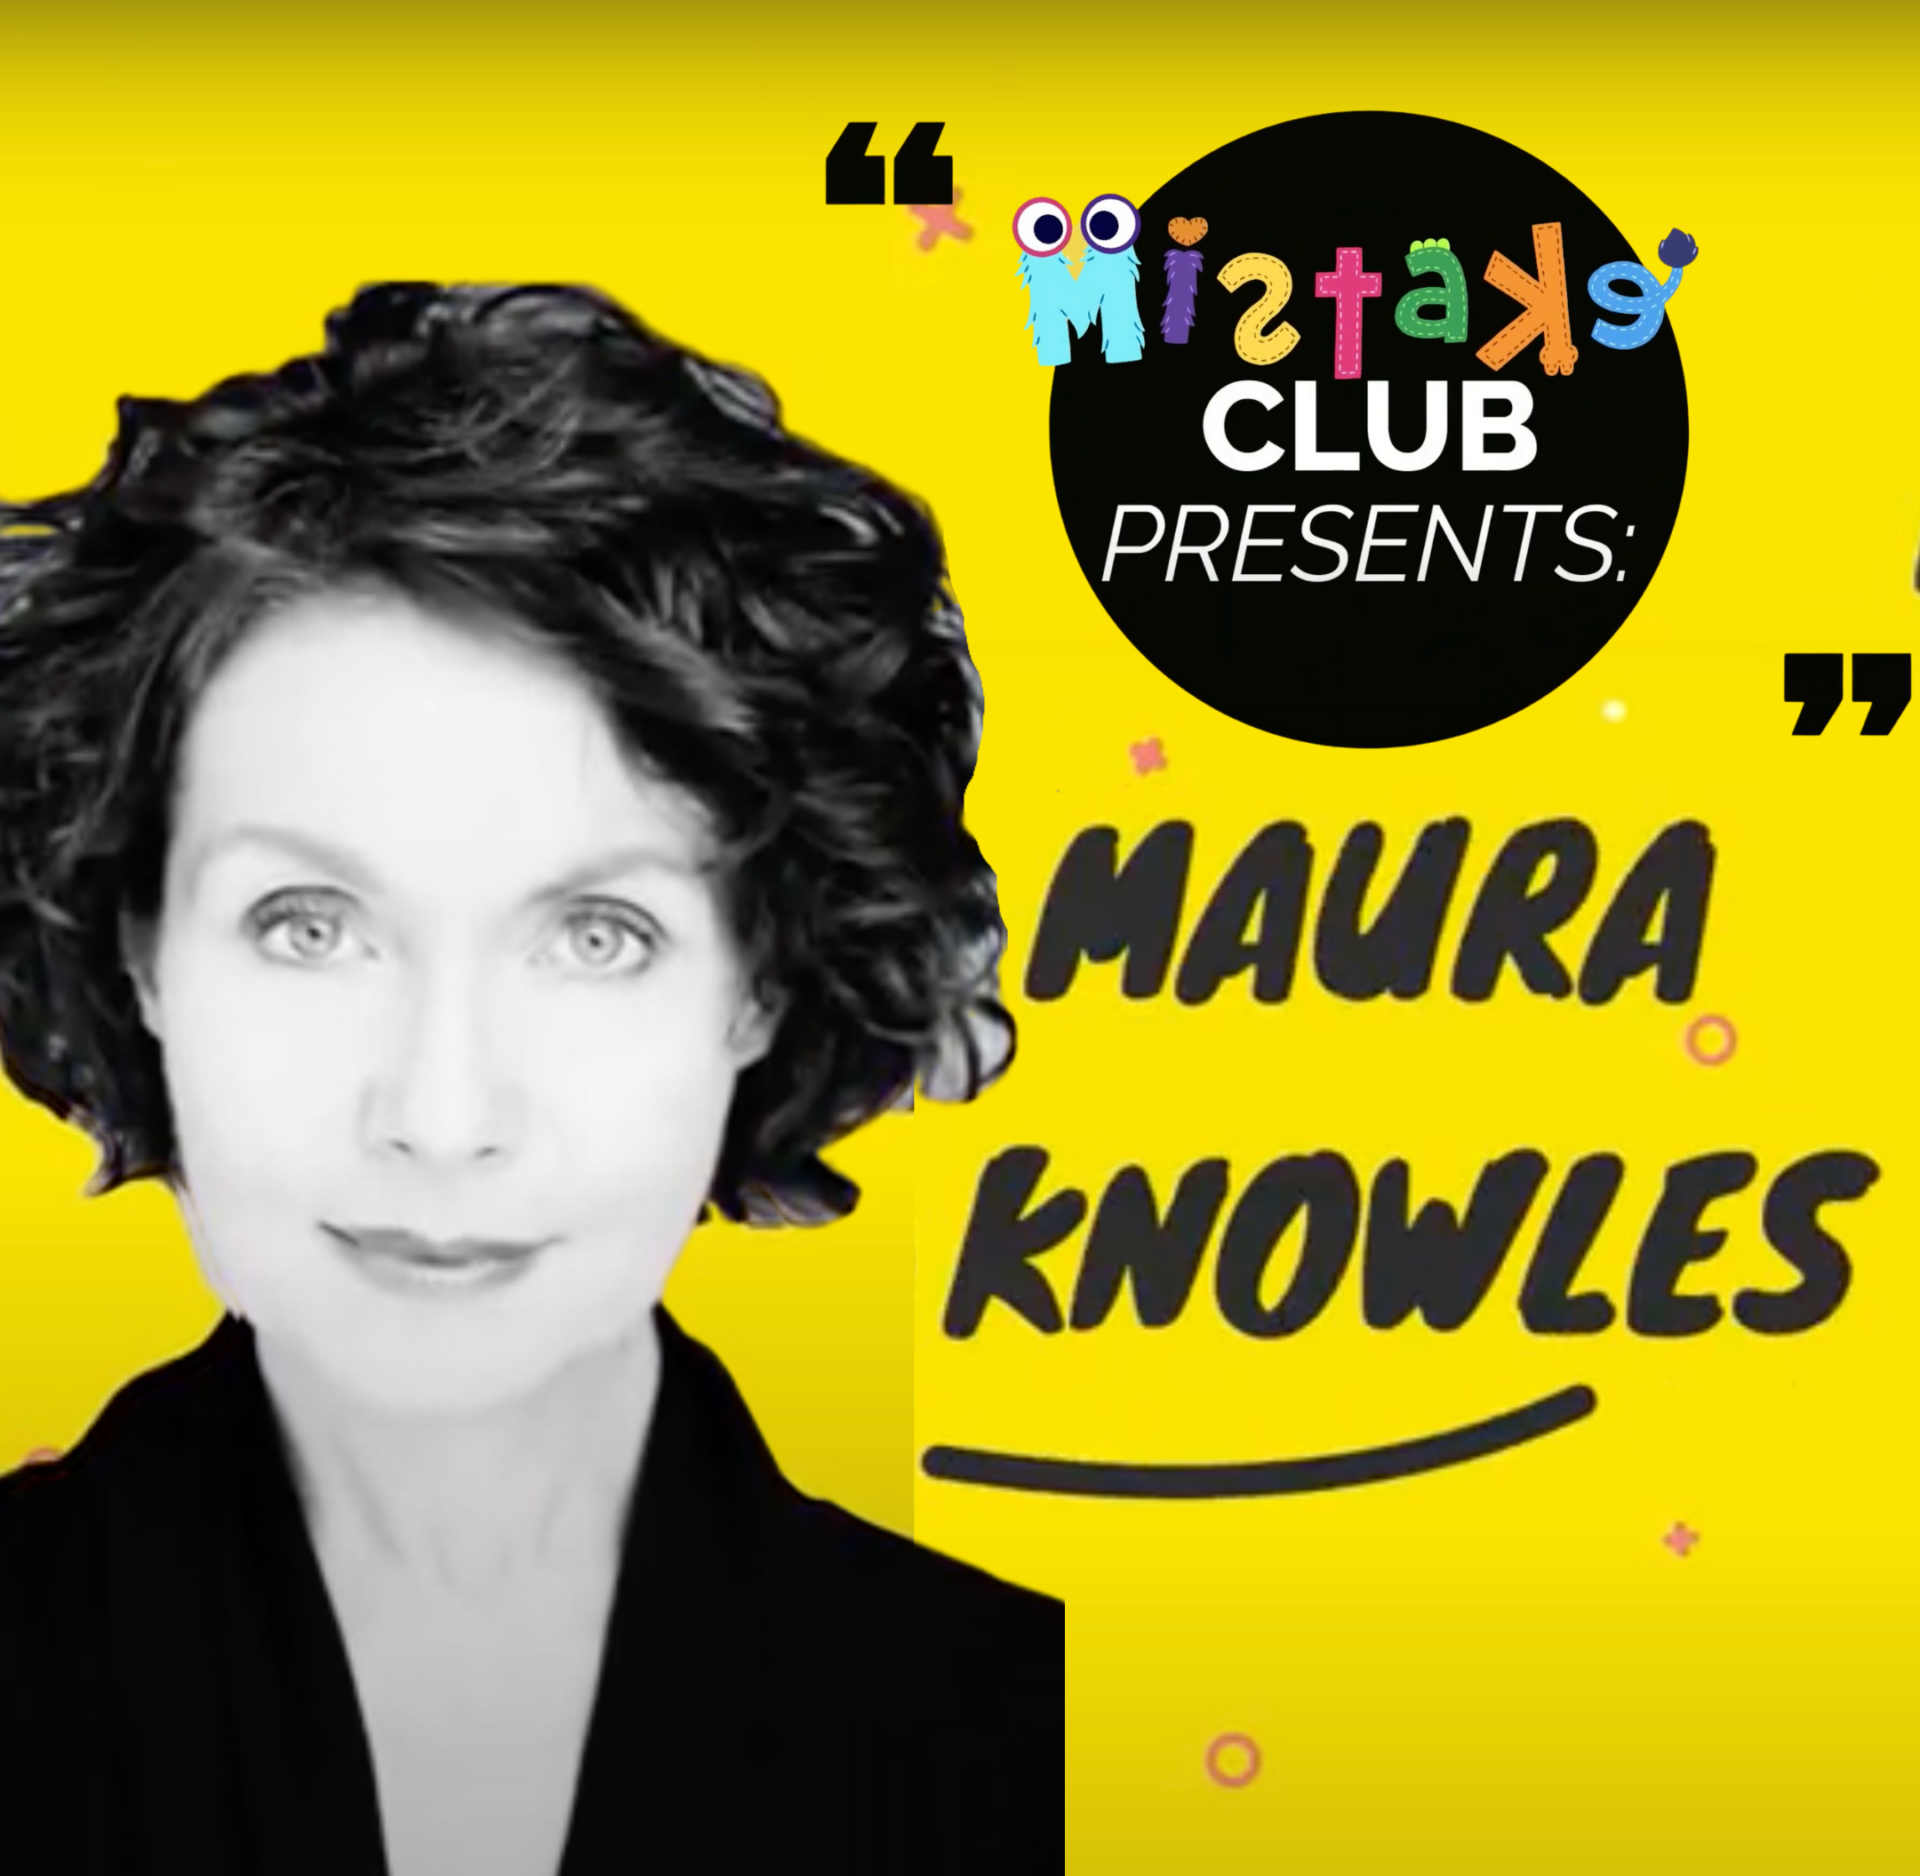 """Black and white photo of Mo on yellow background with logo for """"Mistakes Club."""""""